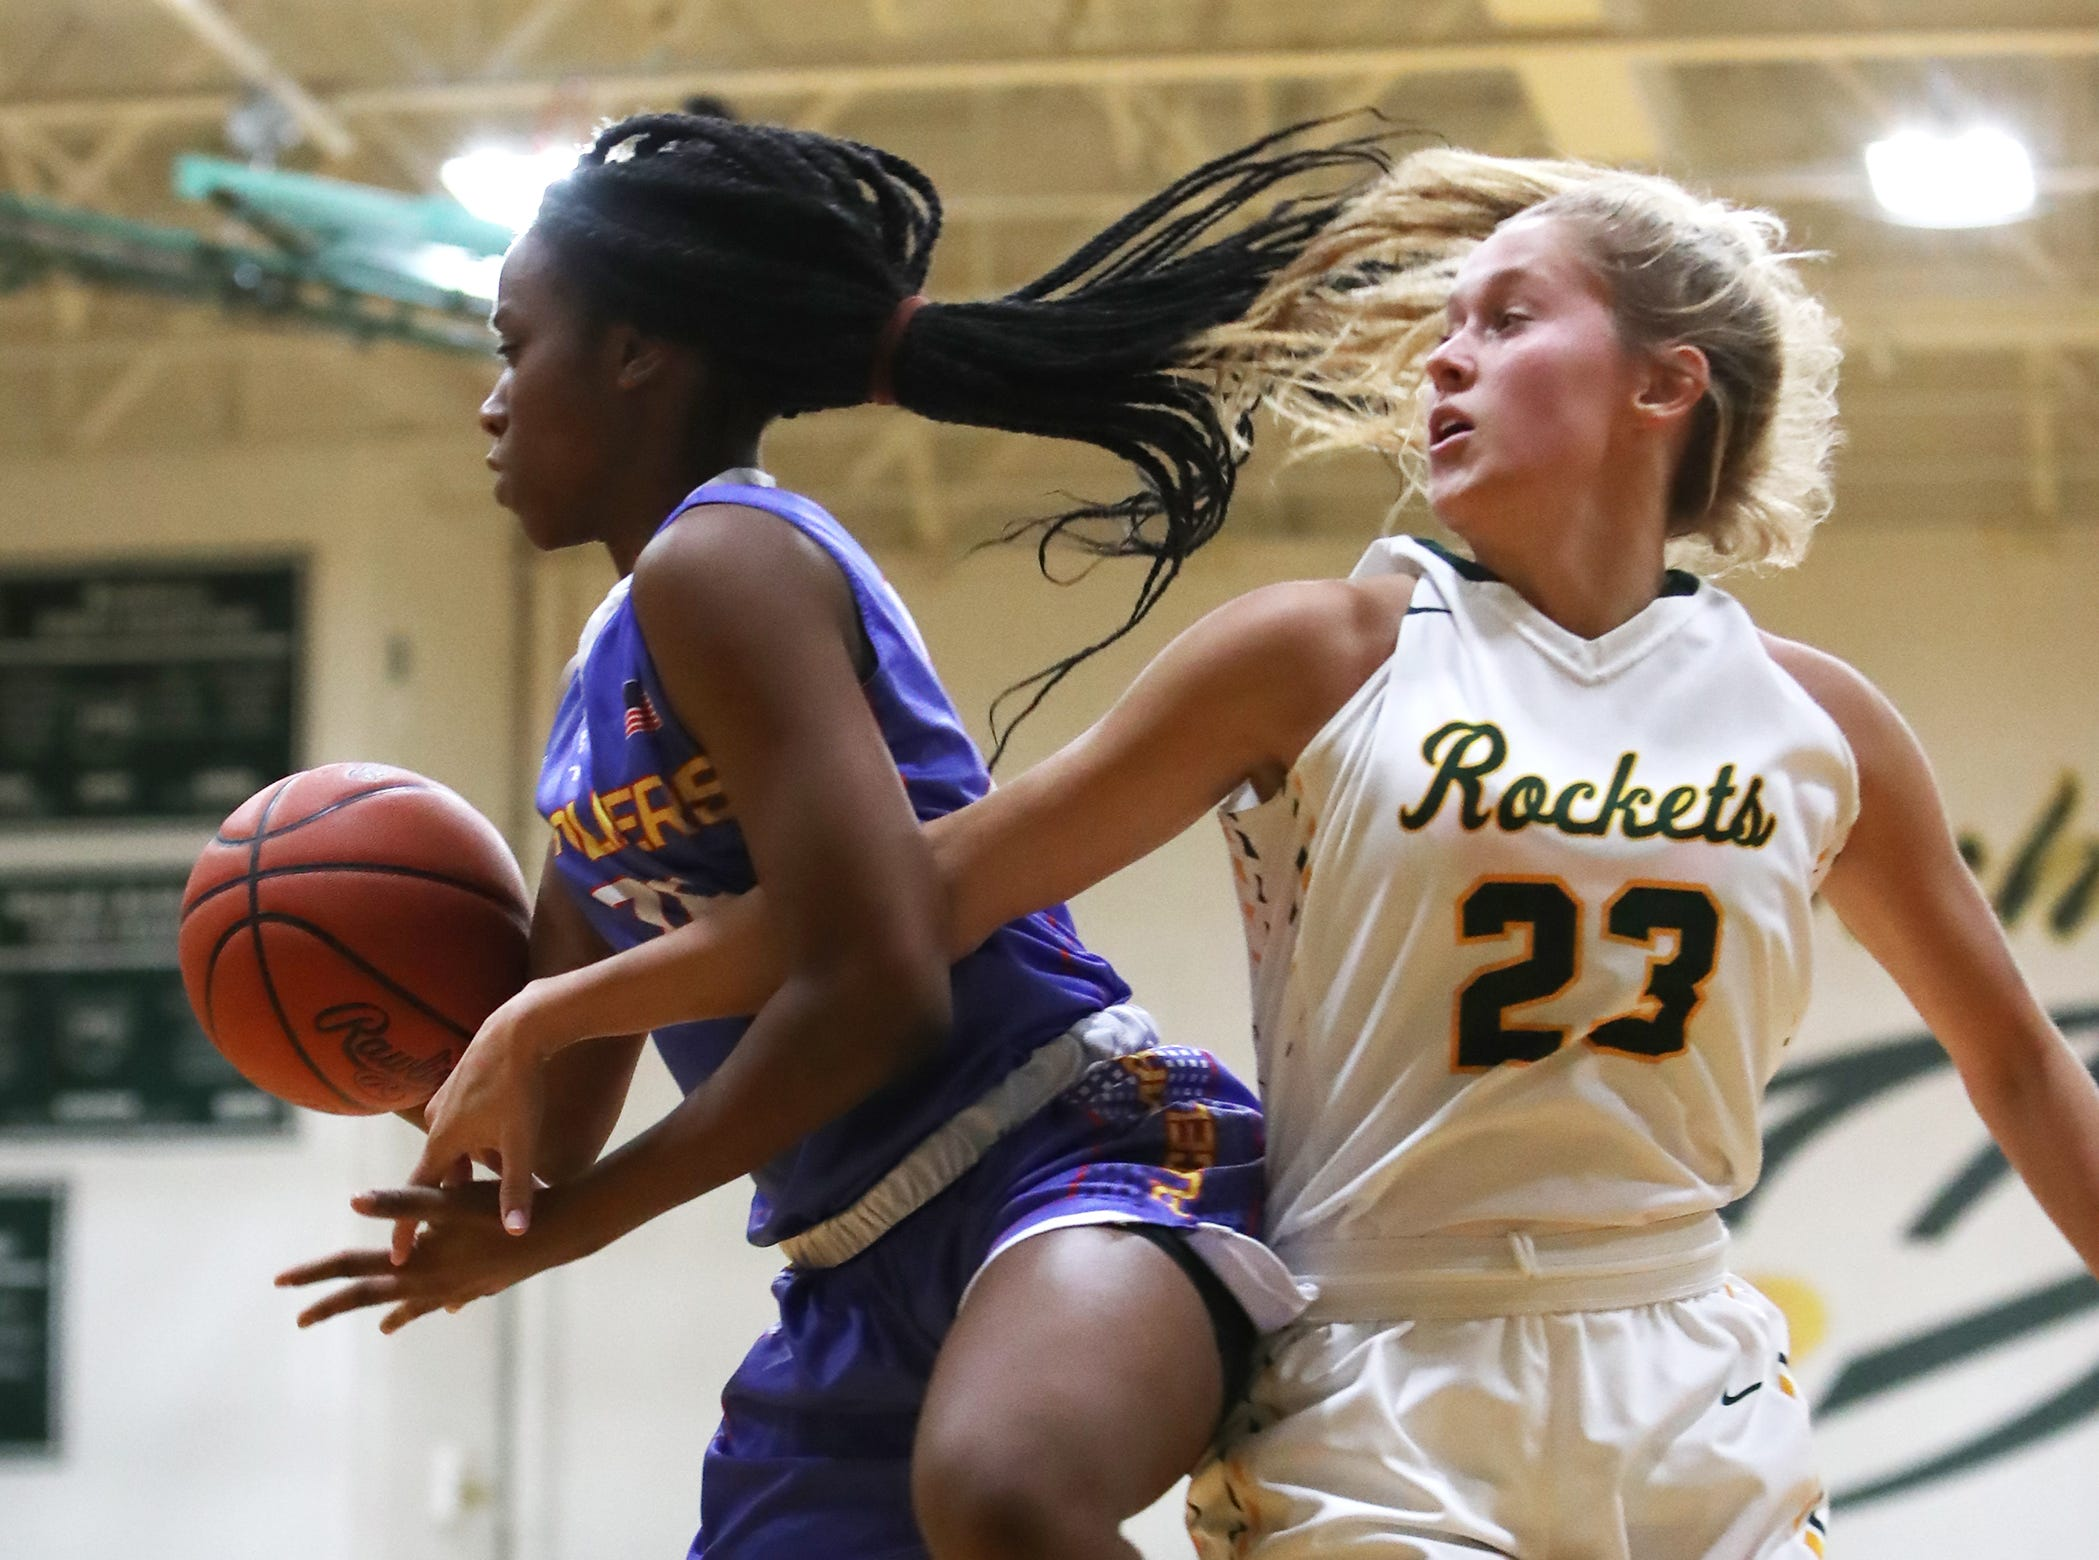 McNicholas forward Christina Poole goes after a rebound against Purcell guard Jaimone Jones. McNicholas upset Purcell 51-50.